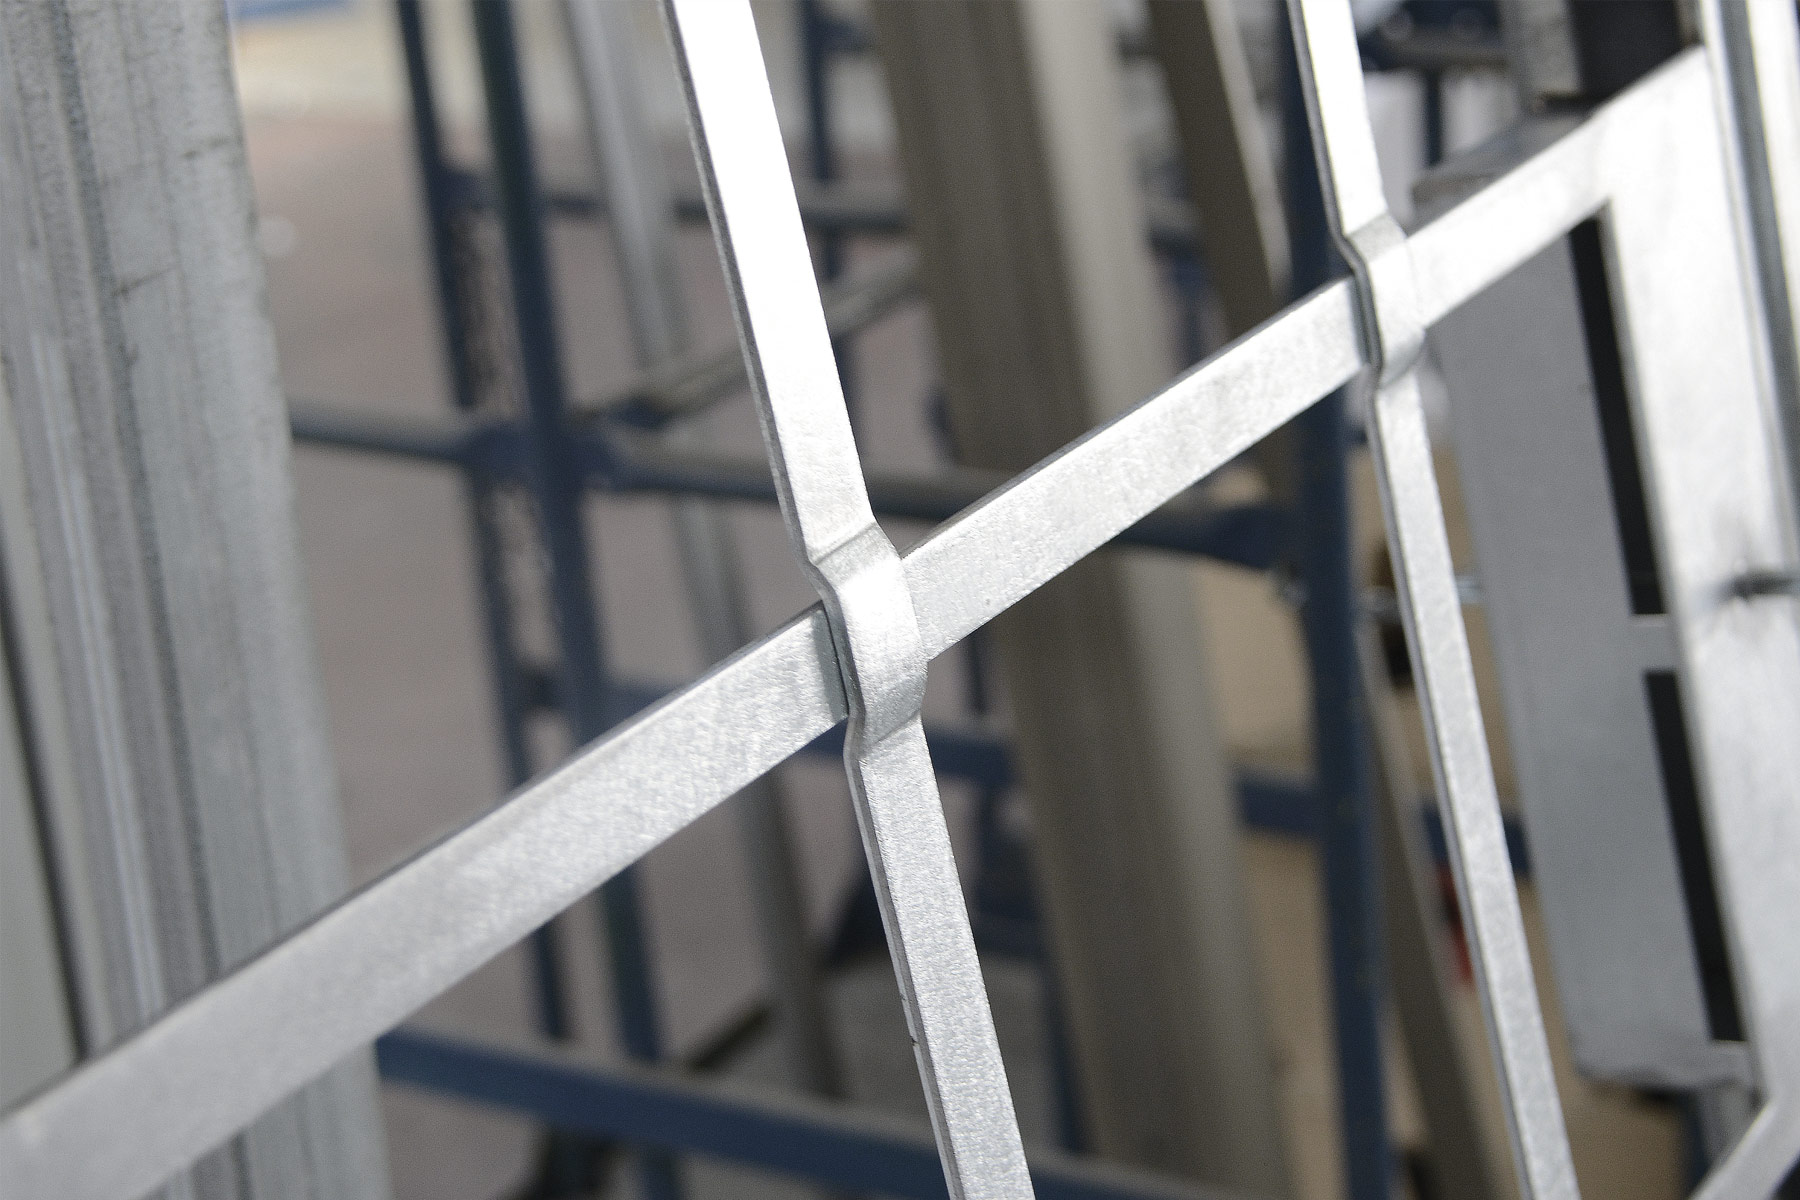 simulated divided window metal structure